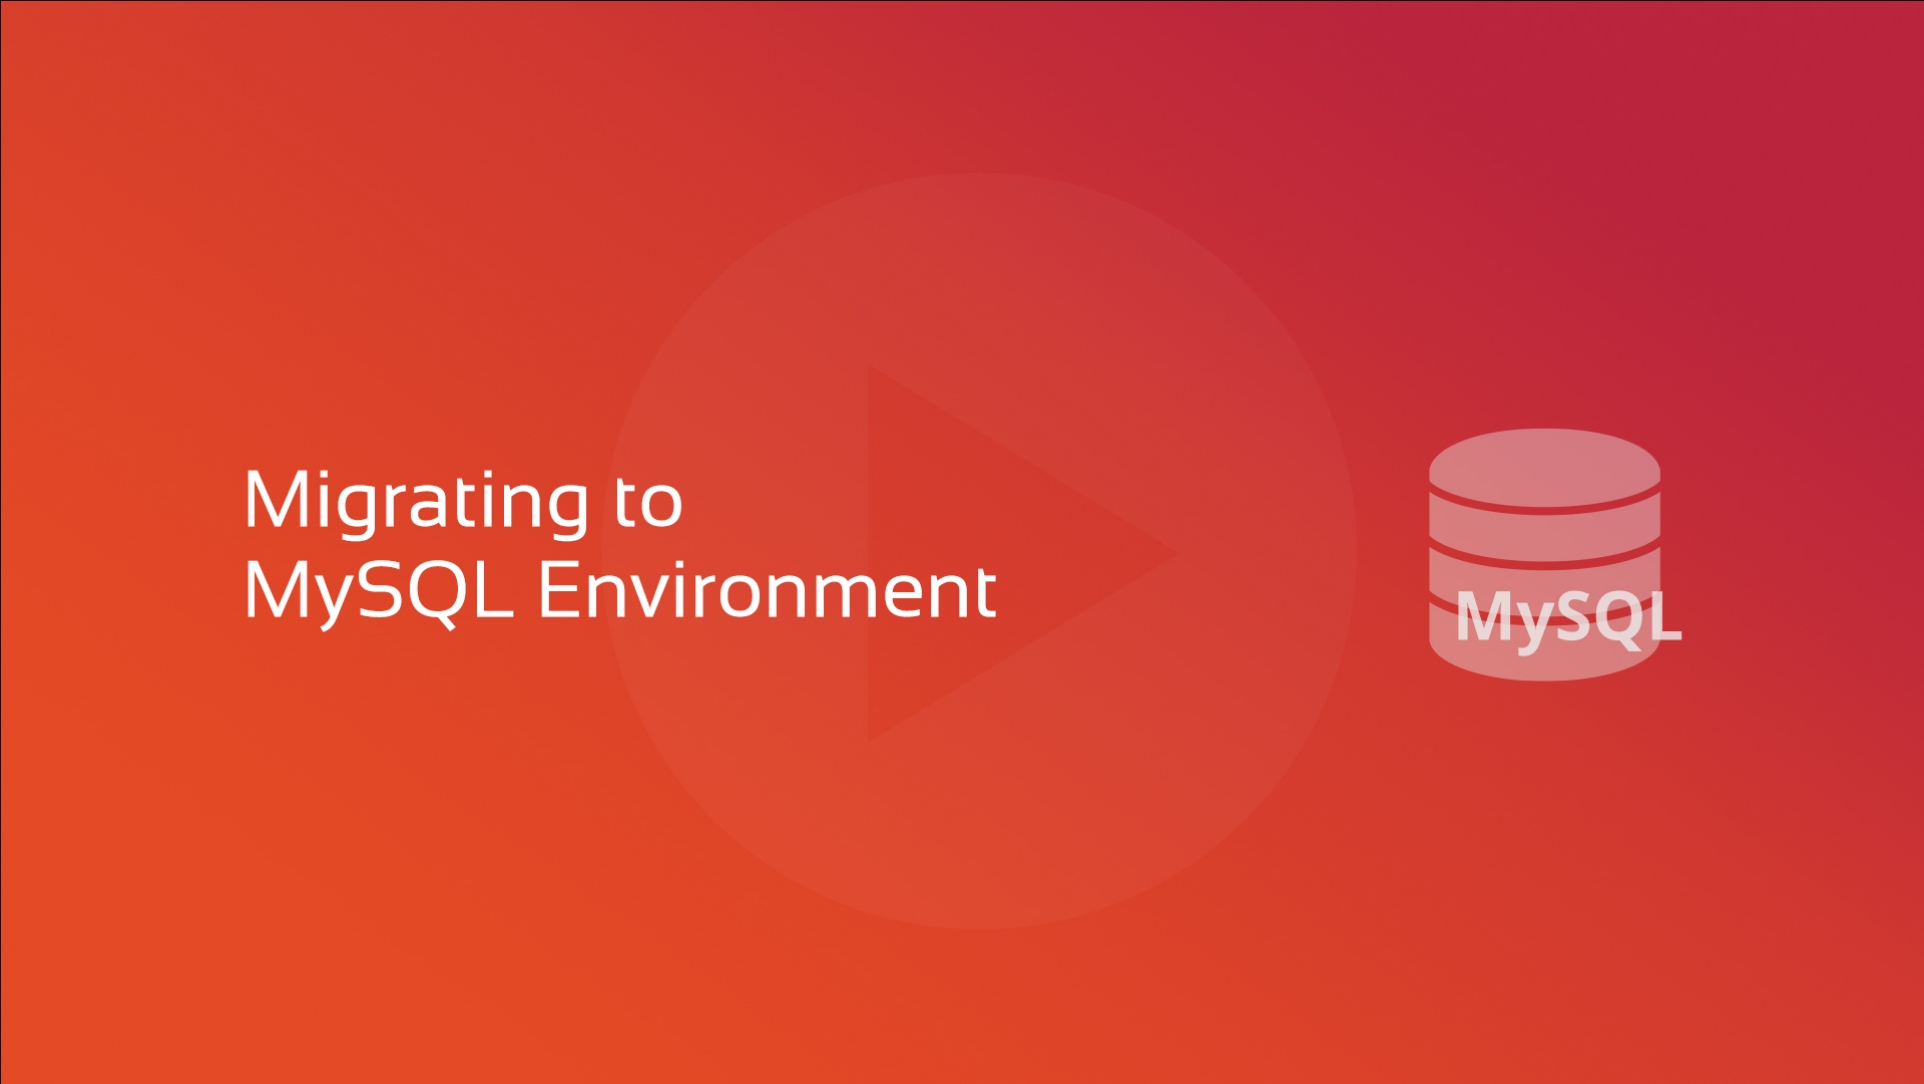 Migrating to MySQL Environment